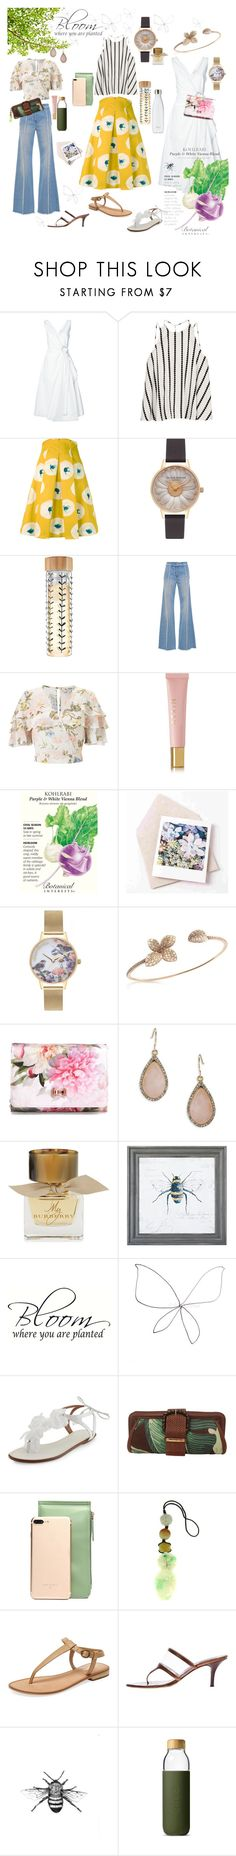 """""""Summer Garden Party"""" by nettie4110 ❤ liked on Polyvore featuring 10 Crosby Derek Lam, Finders Keepers, Eggs, Olivia Burton, Blumarine, Miss Selfridge, AERIN, Pasquale Bruni, Ted Baker and Carolee"""